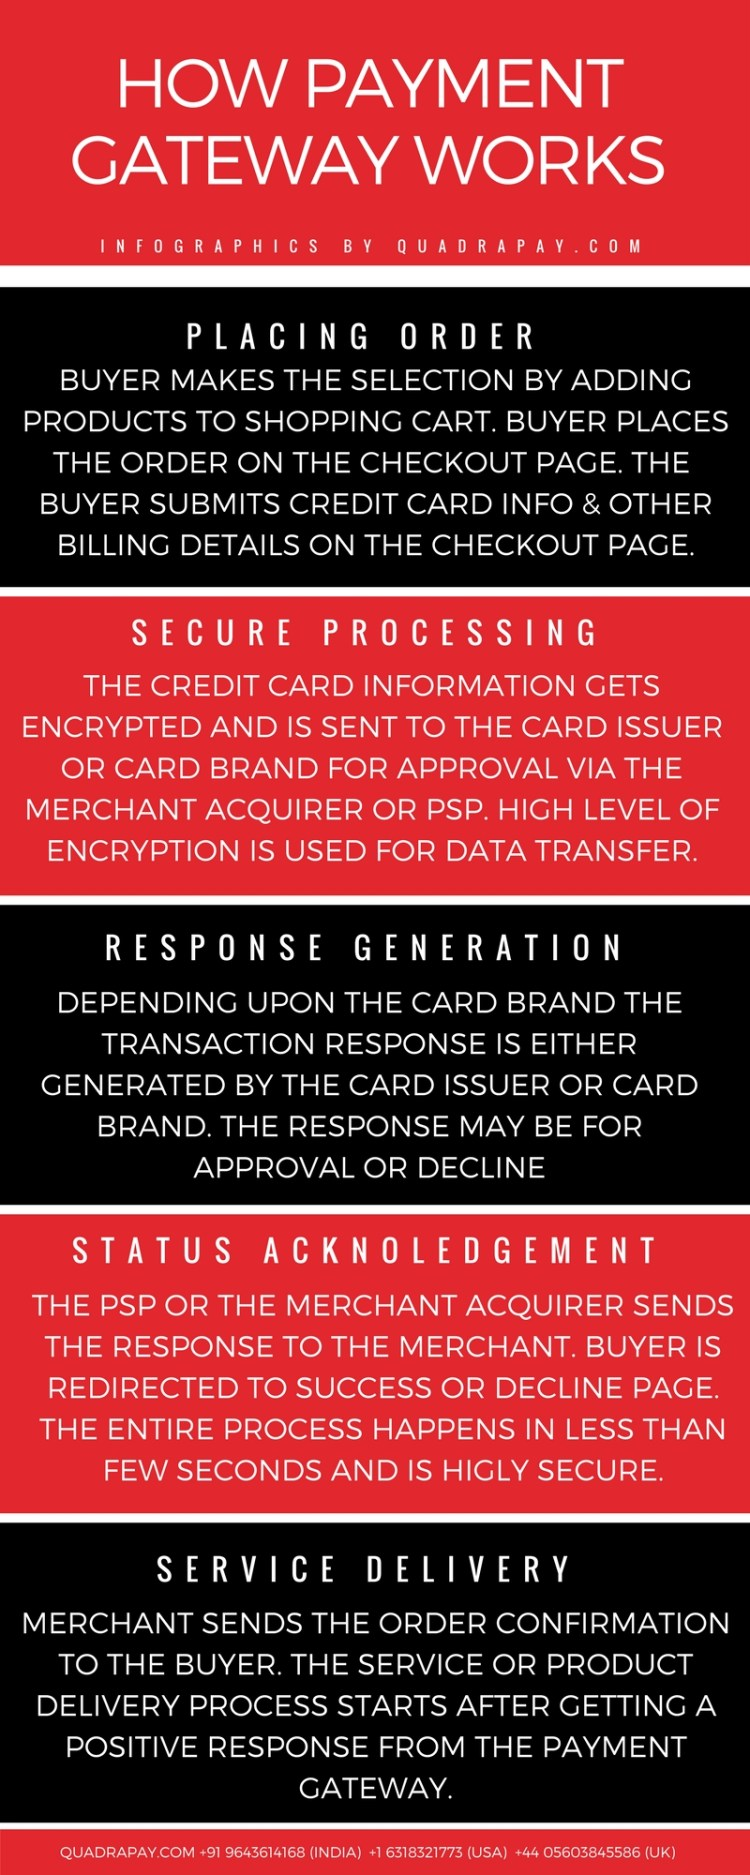 How Payment Gateway Works